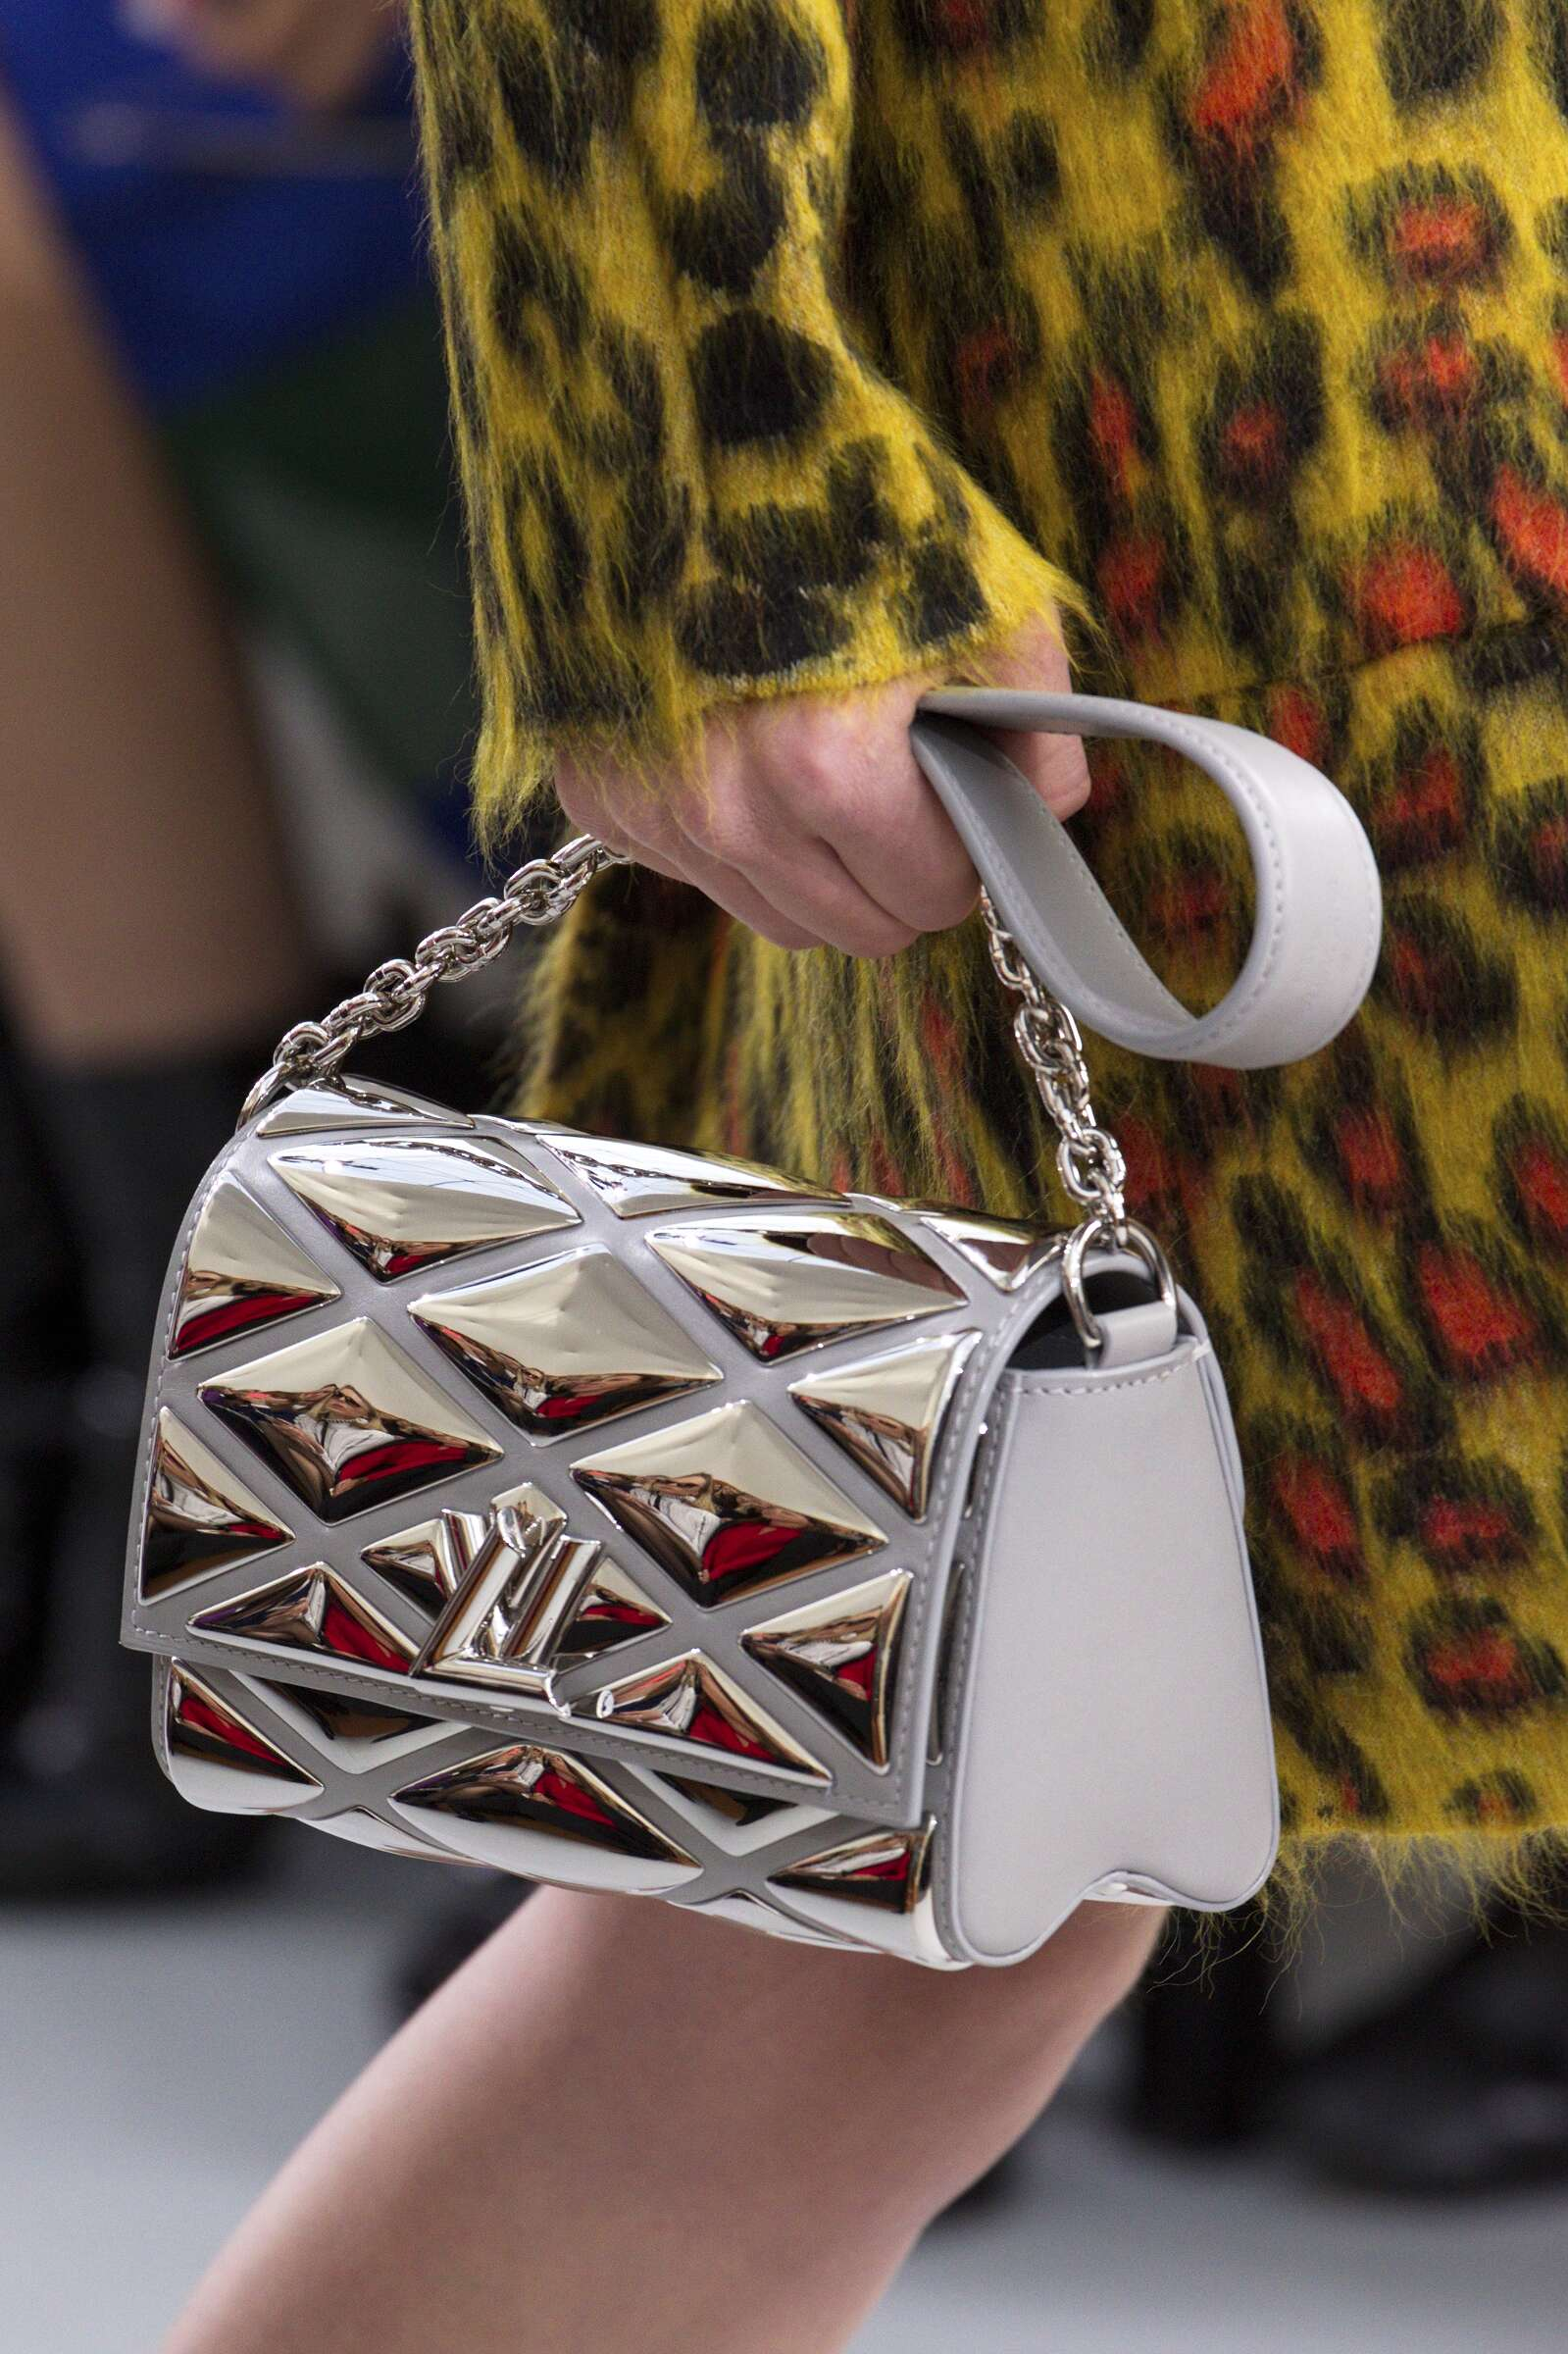 Catwalk Louis Vuitton Bag Details Collection Fashion Show Winter 2015